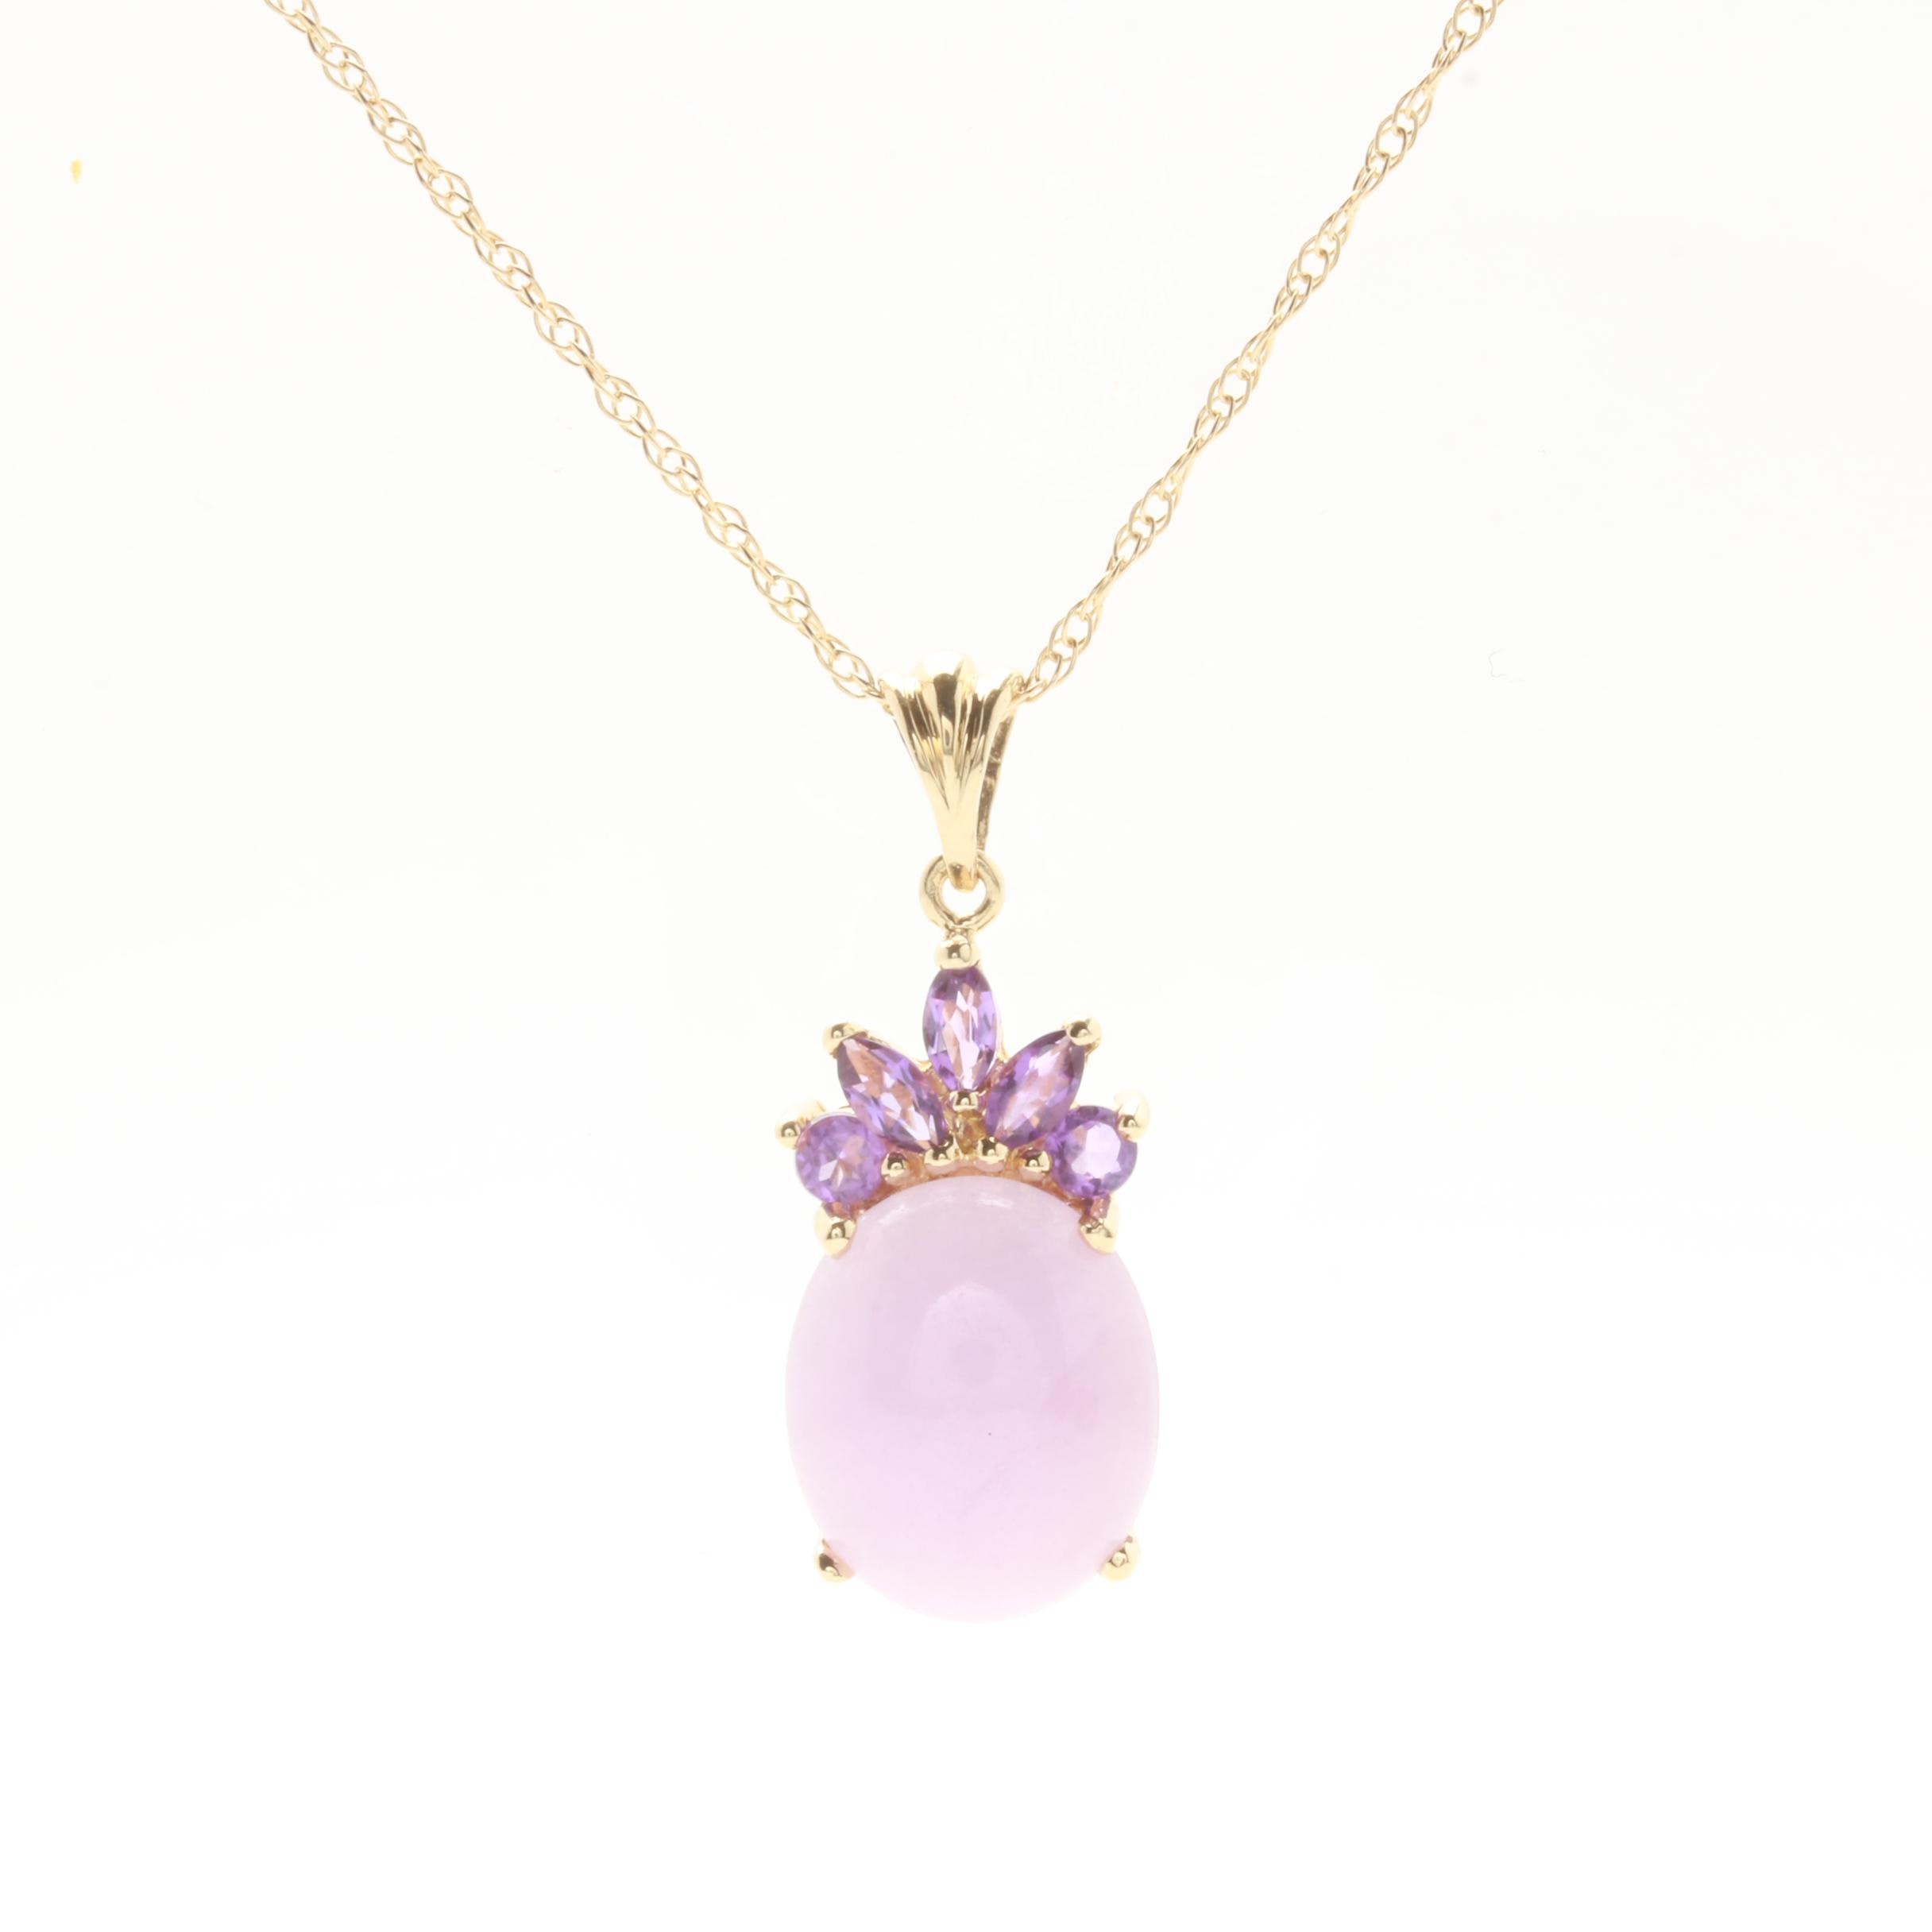 14K Yellow Gold Lavender Jadeite and Amethyst Pendant Necklace